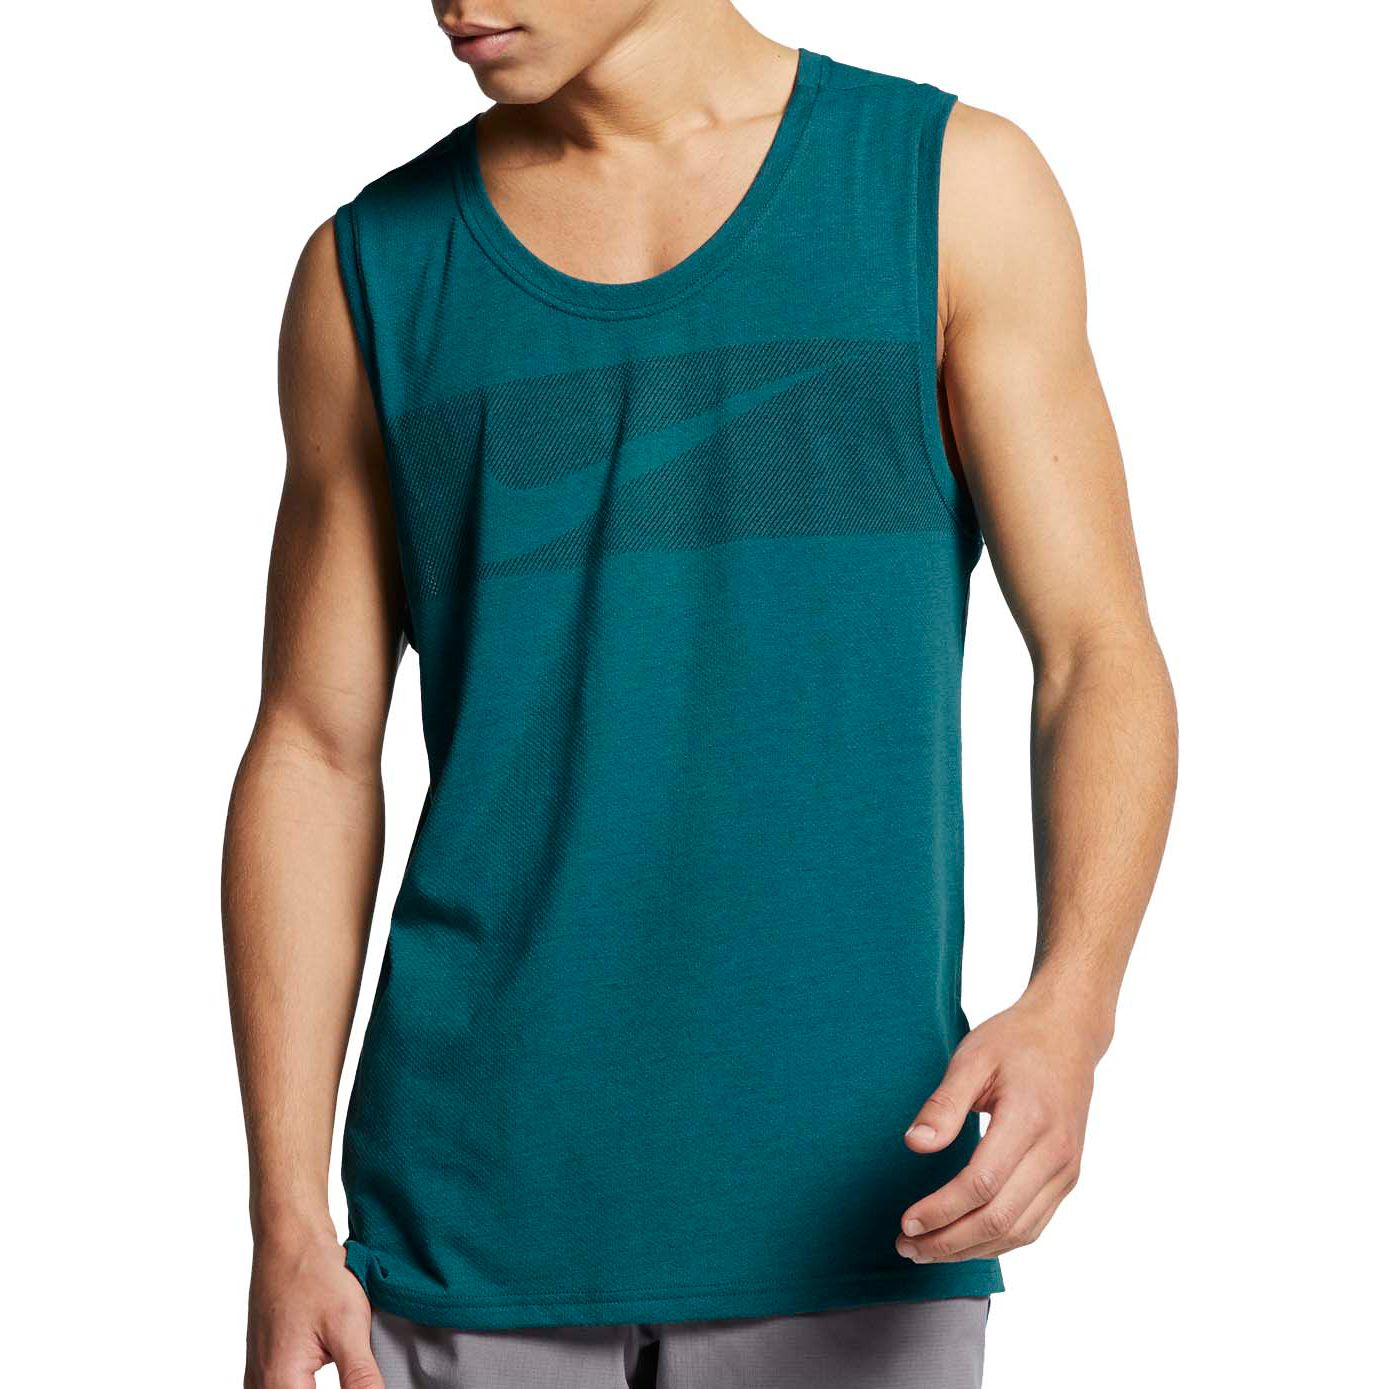 Nike Men's Breathe HyperDry Graphic Tank Top